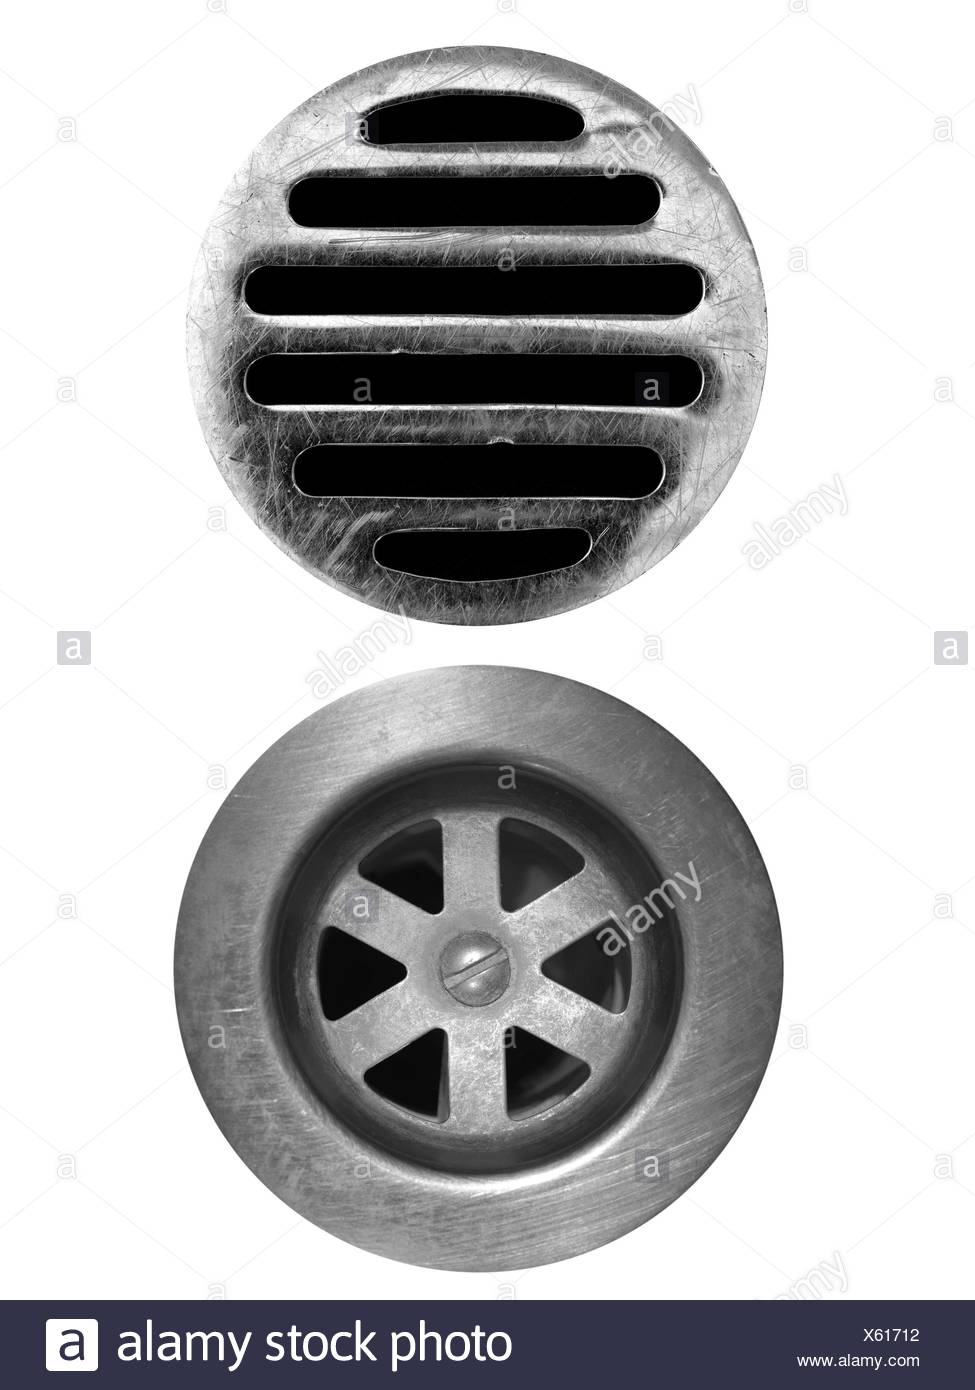 A drain hole isolate on a white background Stock Photo 279081294 975x1390